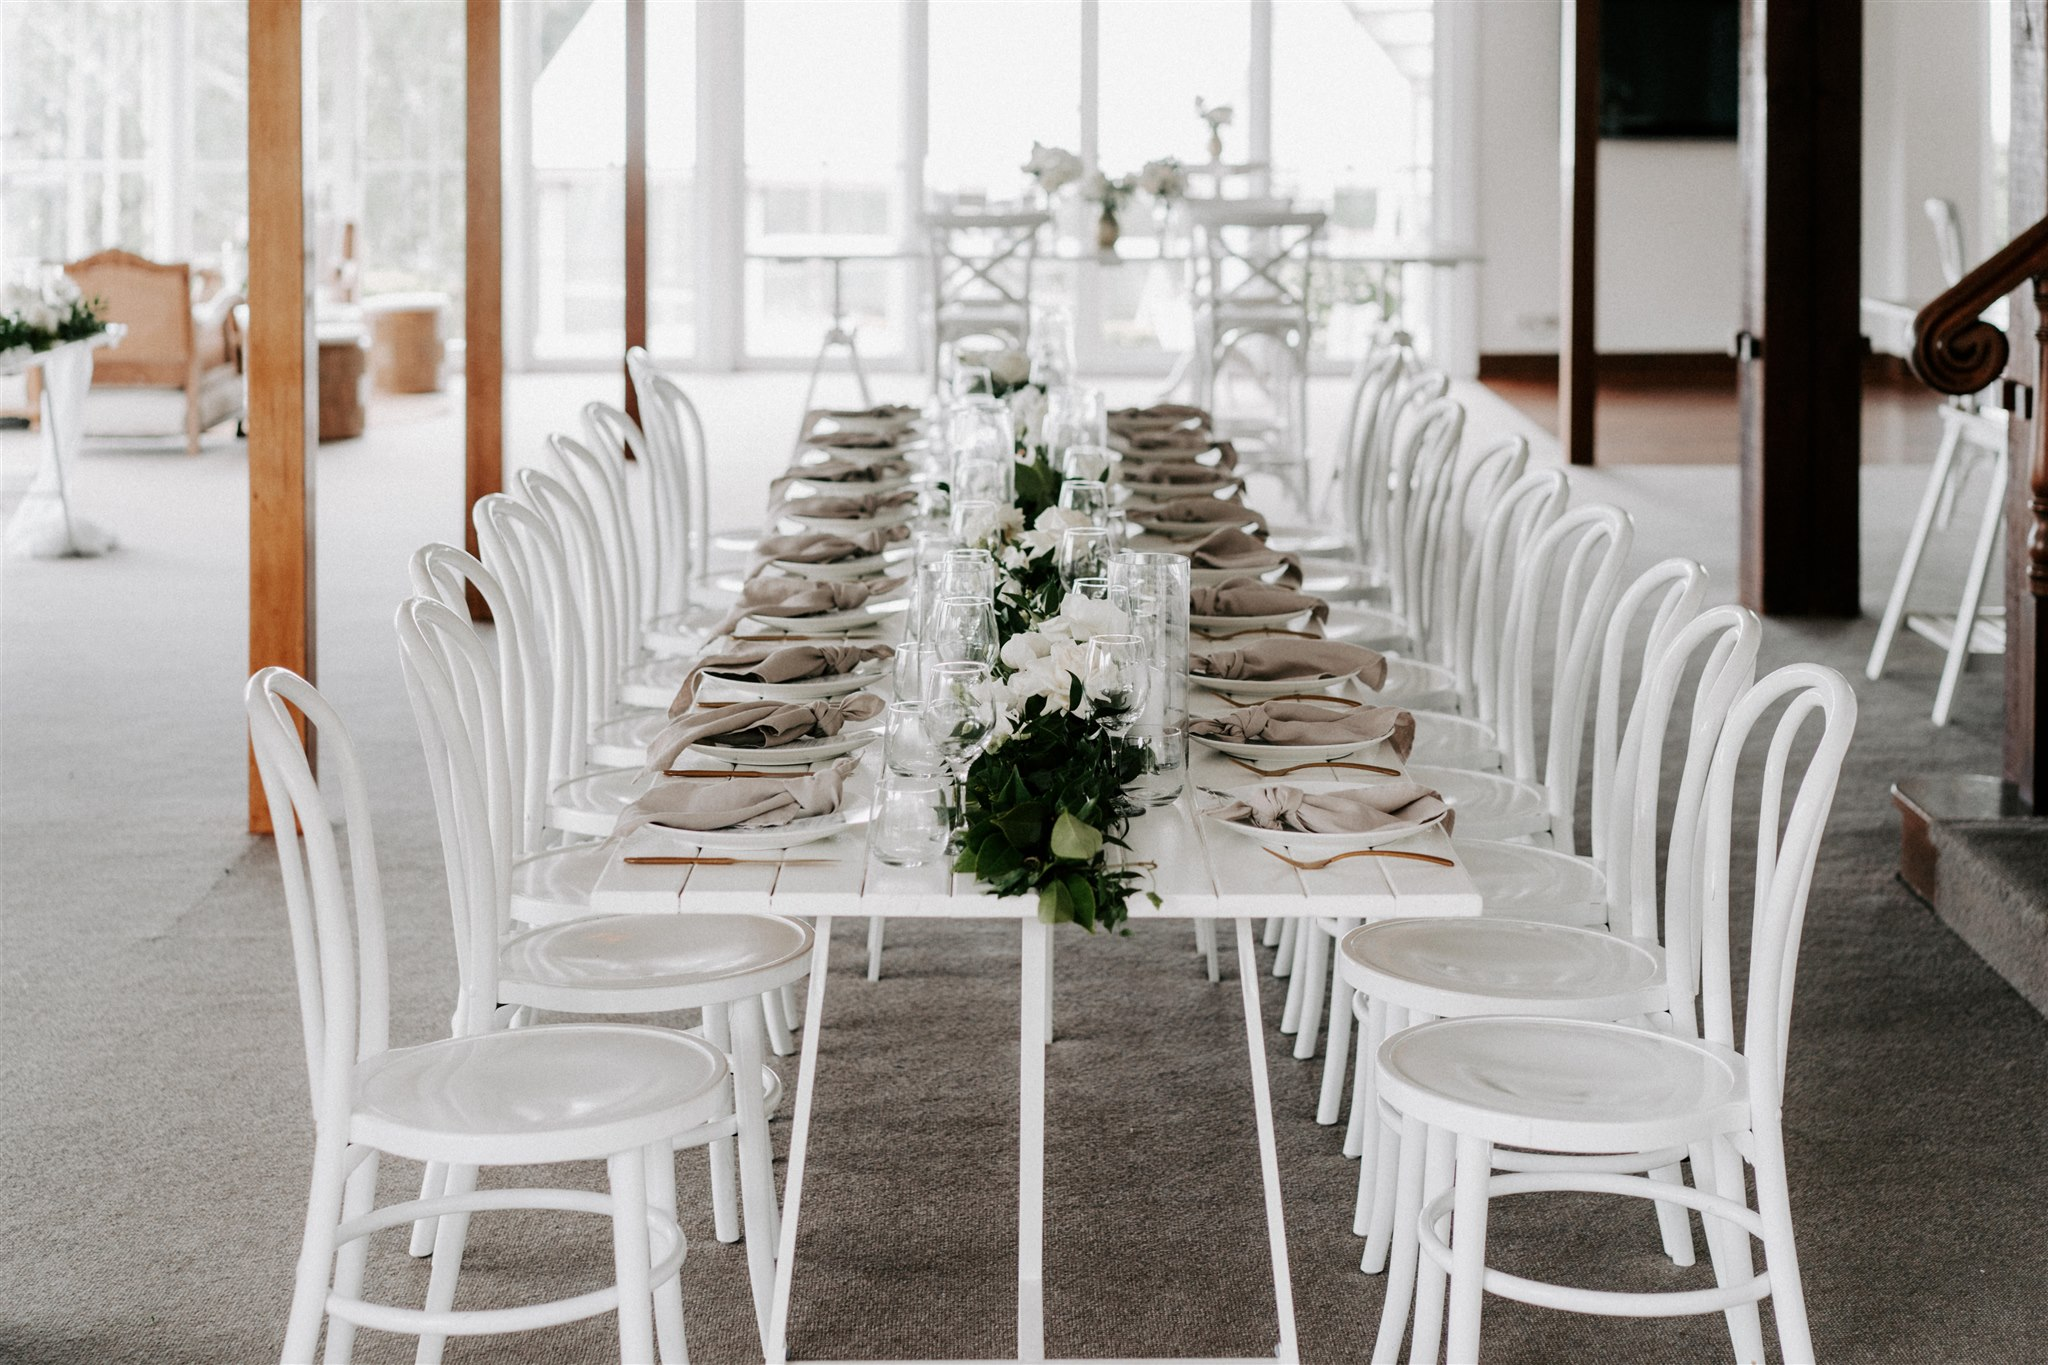 Reception table garlands featuring lush greenery and white blooms